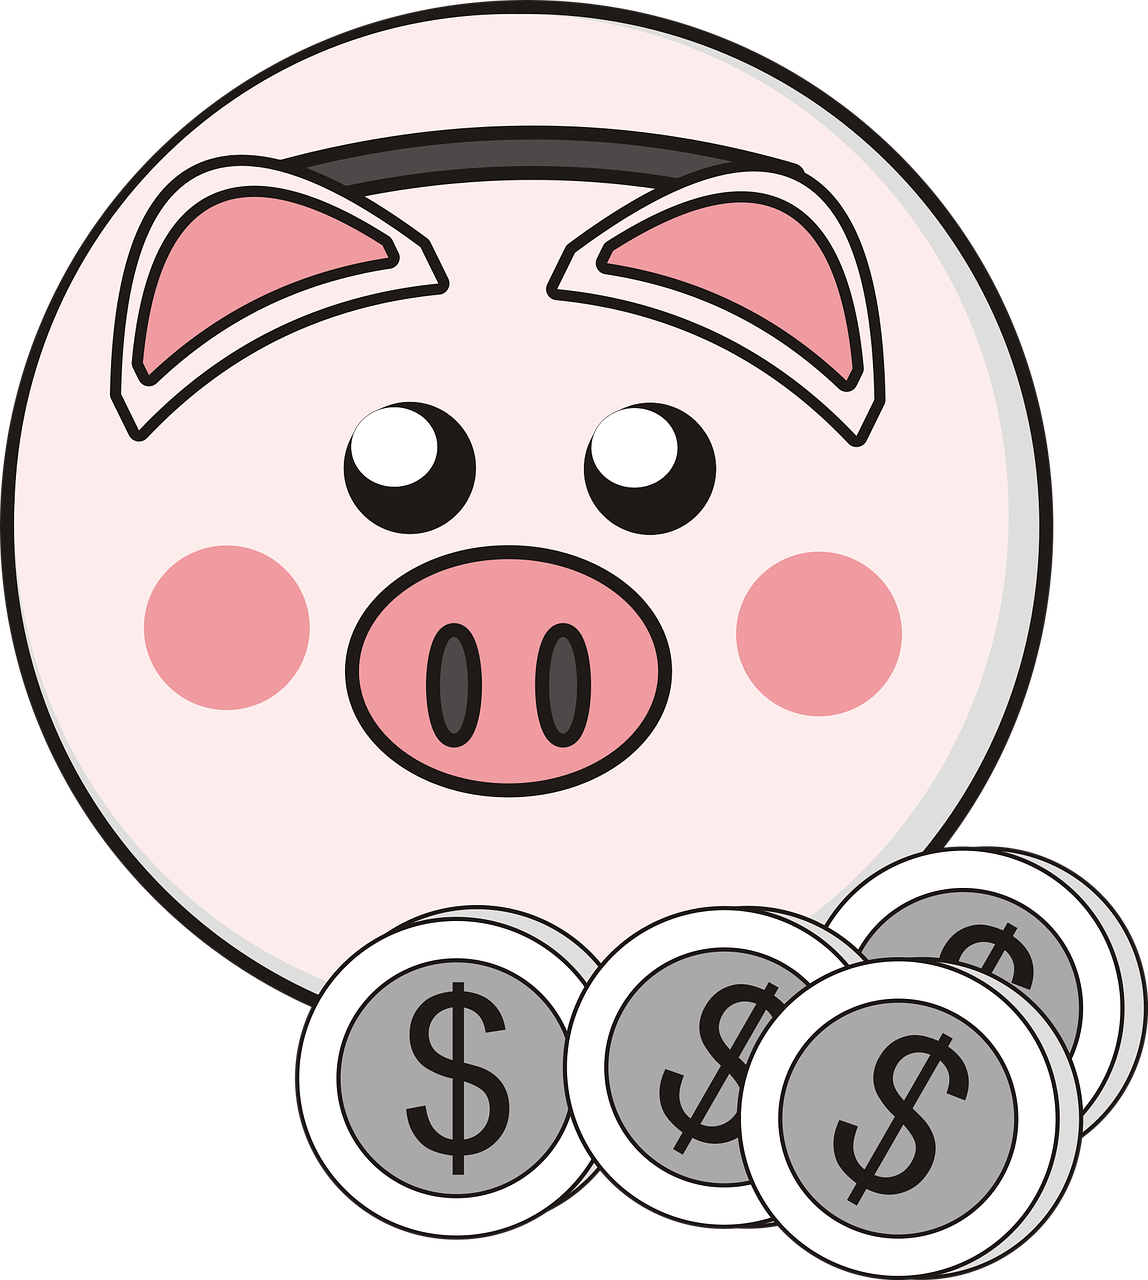 Clipart of bank freeuse stock Piggy Bank 4 Coins Clipart transparent PNG - StickPNG freeuse stock